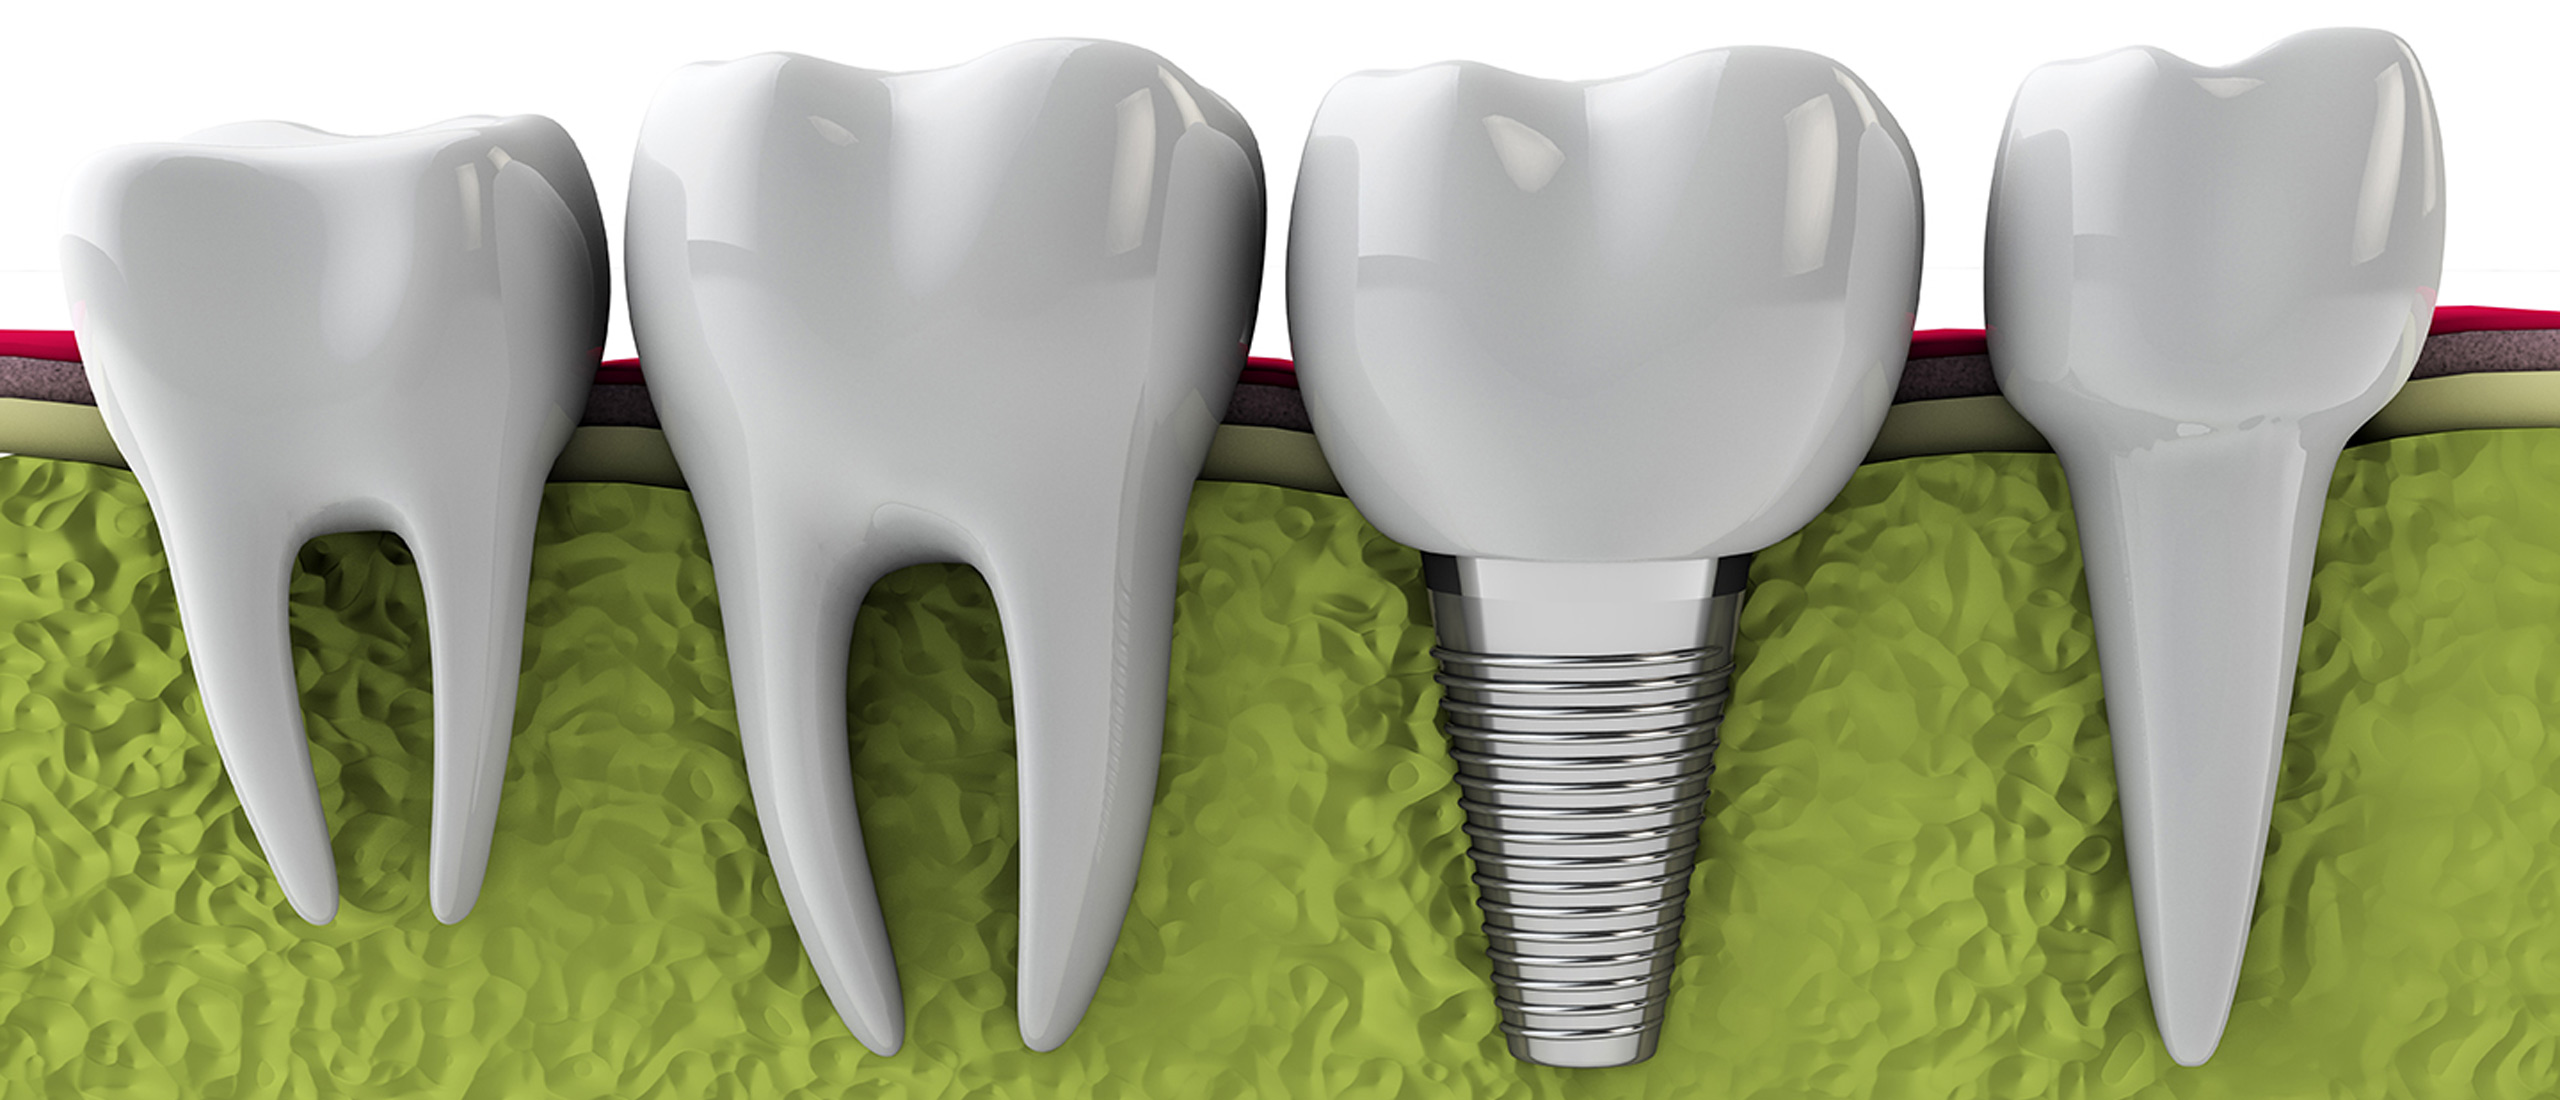 Implant Odontotheraphy